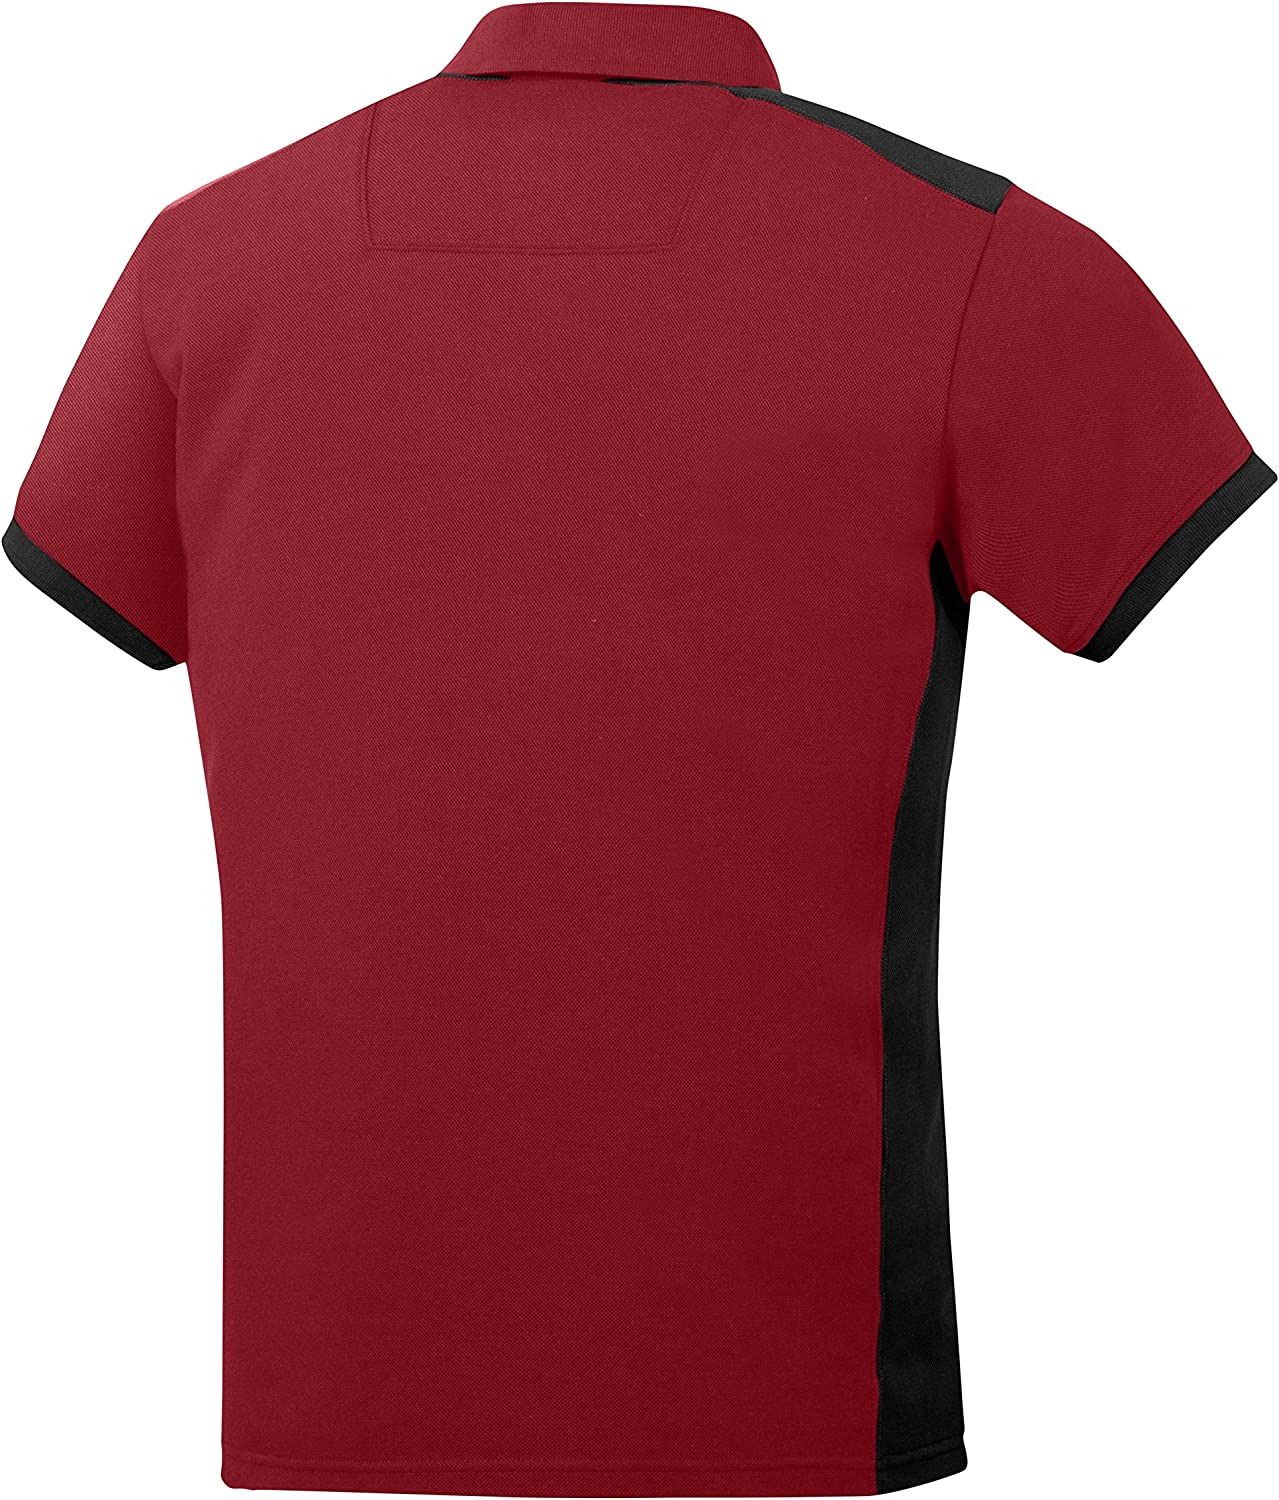 Snickers 27155104008 Size 2X-Large All Round Work Polo Shirt Petrol//Black